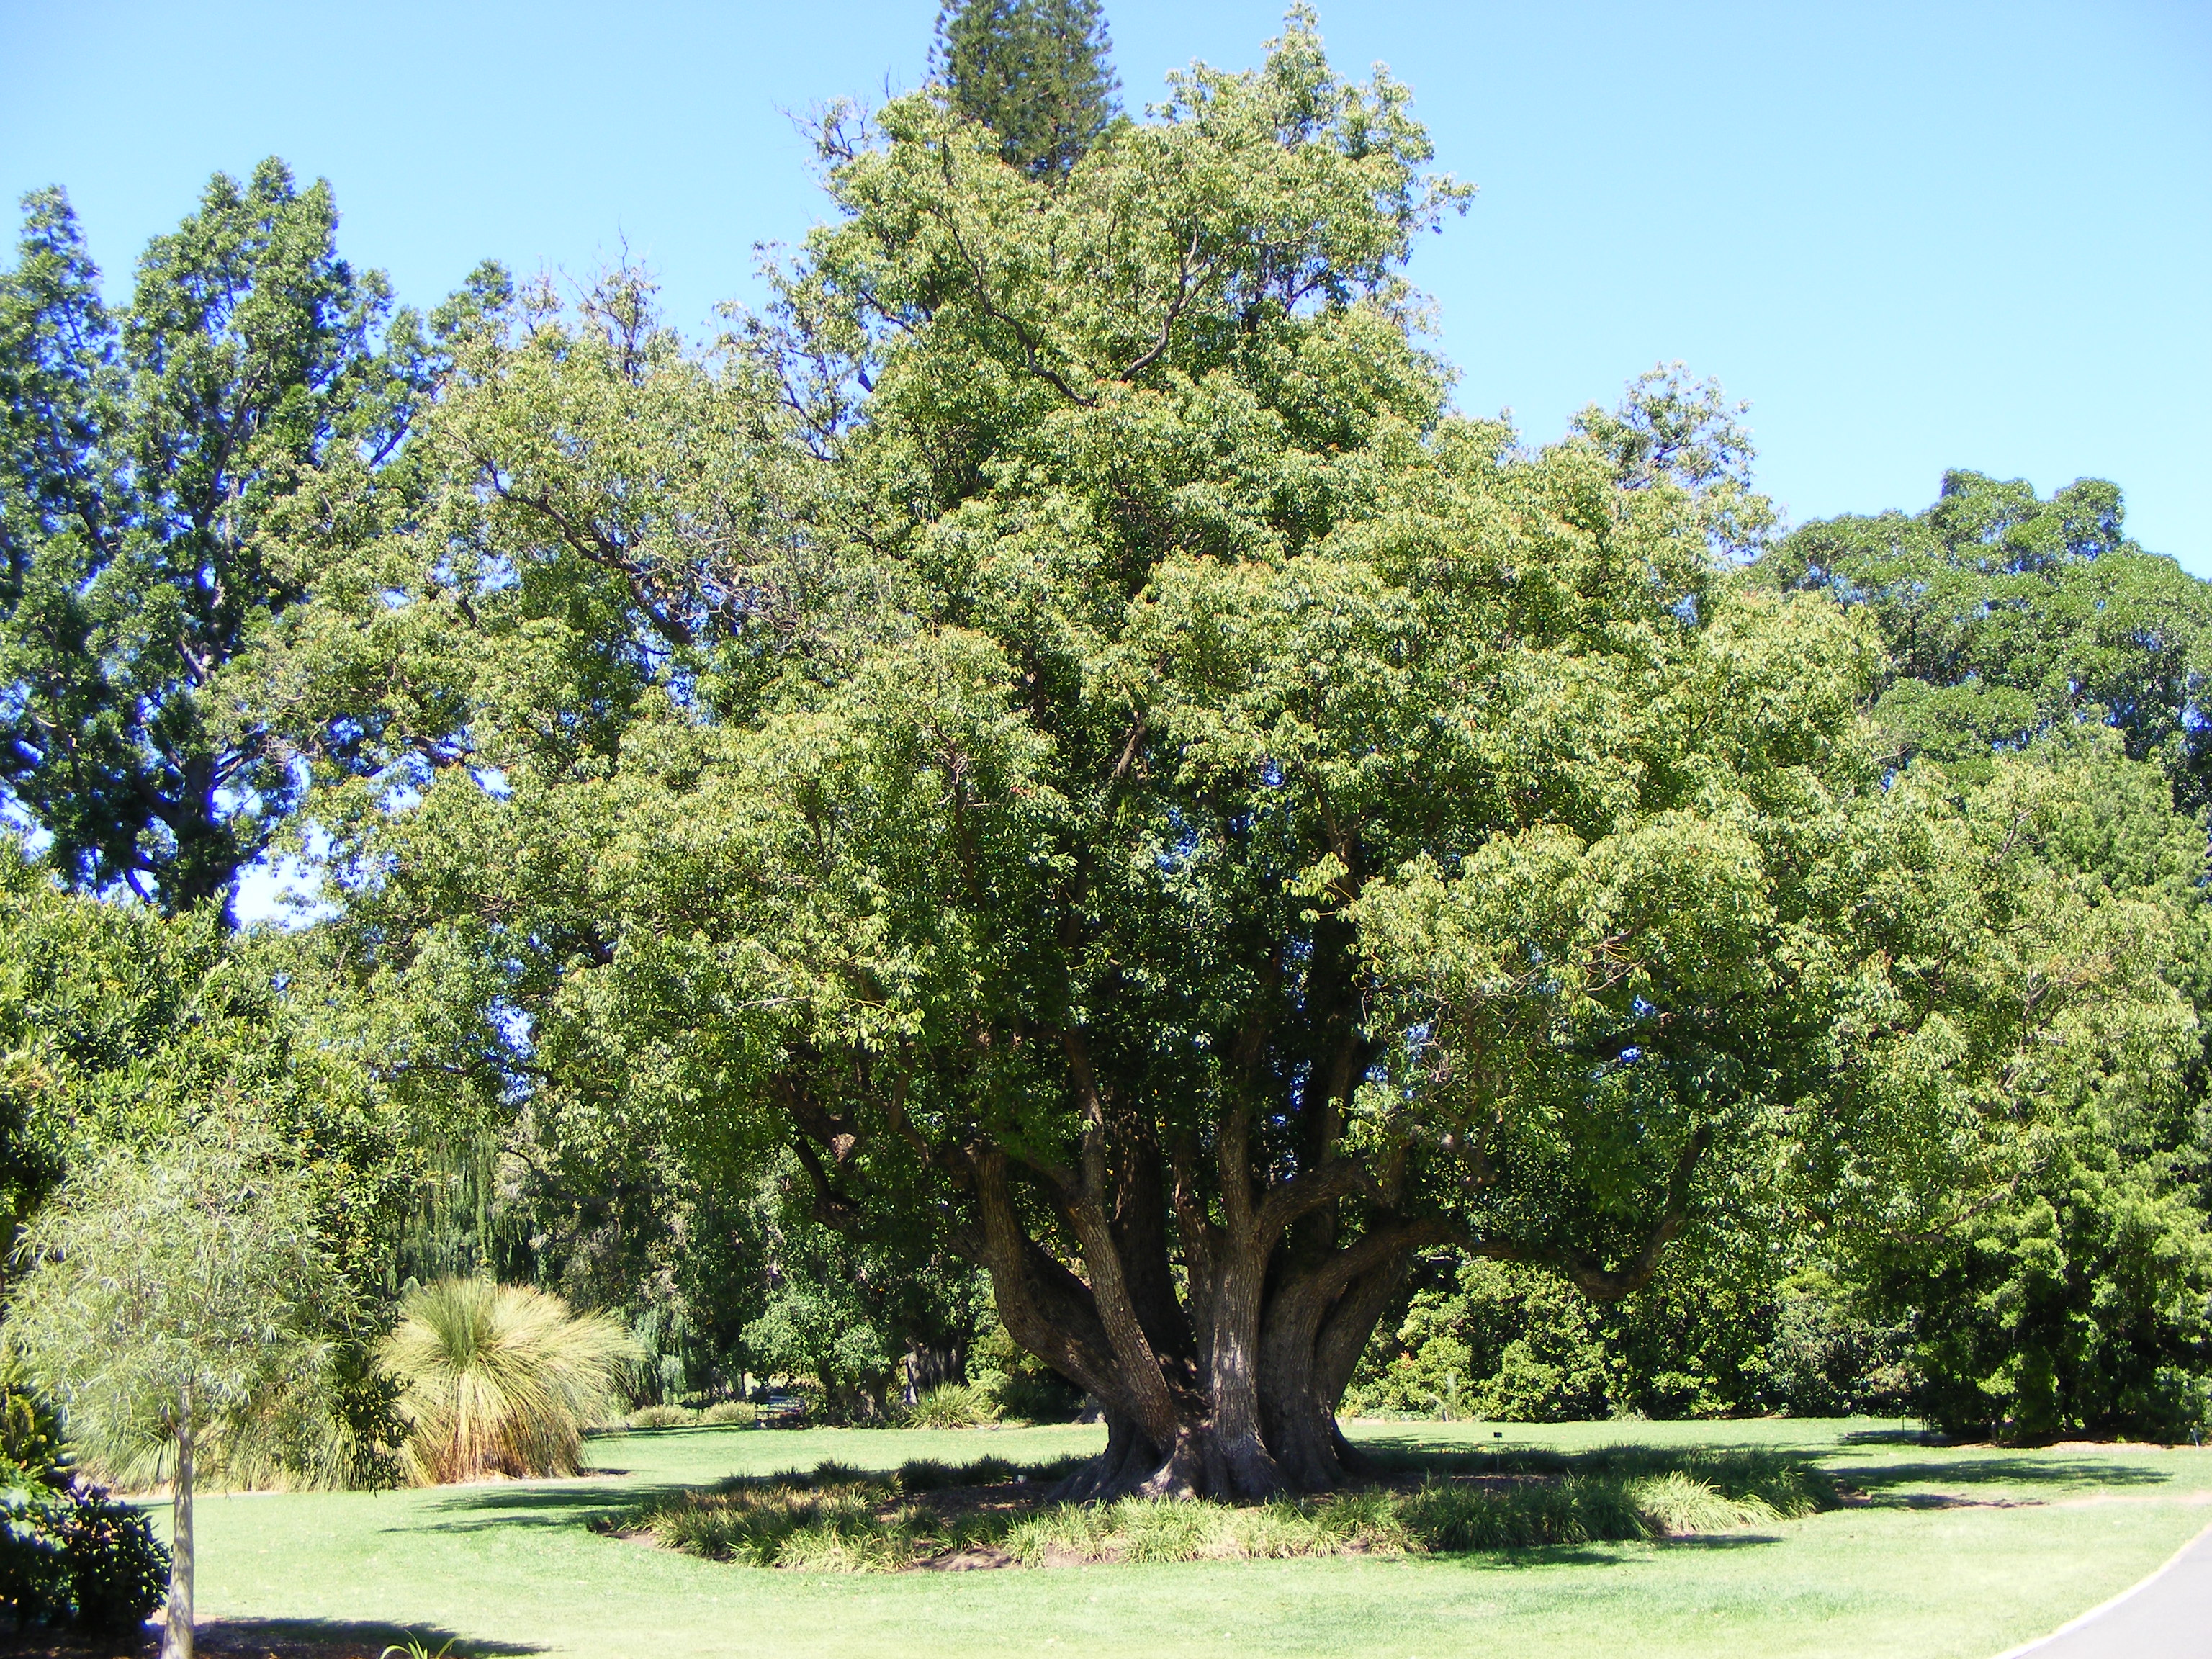 The Cinnamomum camphora tree